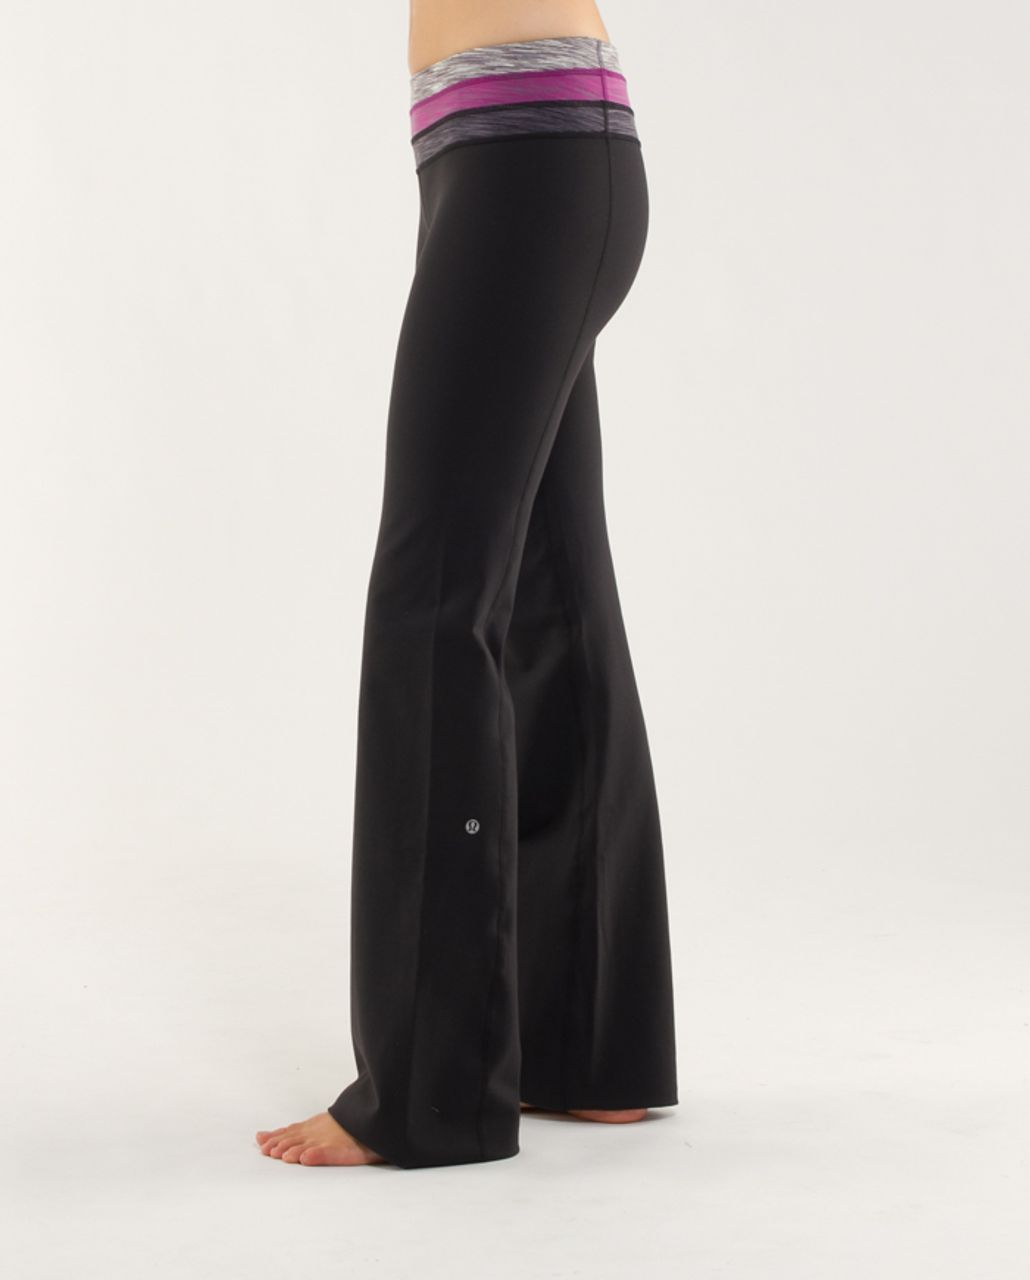 Lululemon Groove Pant (Tall) - Black /  Magnum Space Dye /  Dew Berry Space Dye